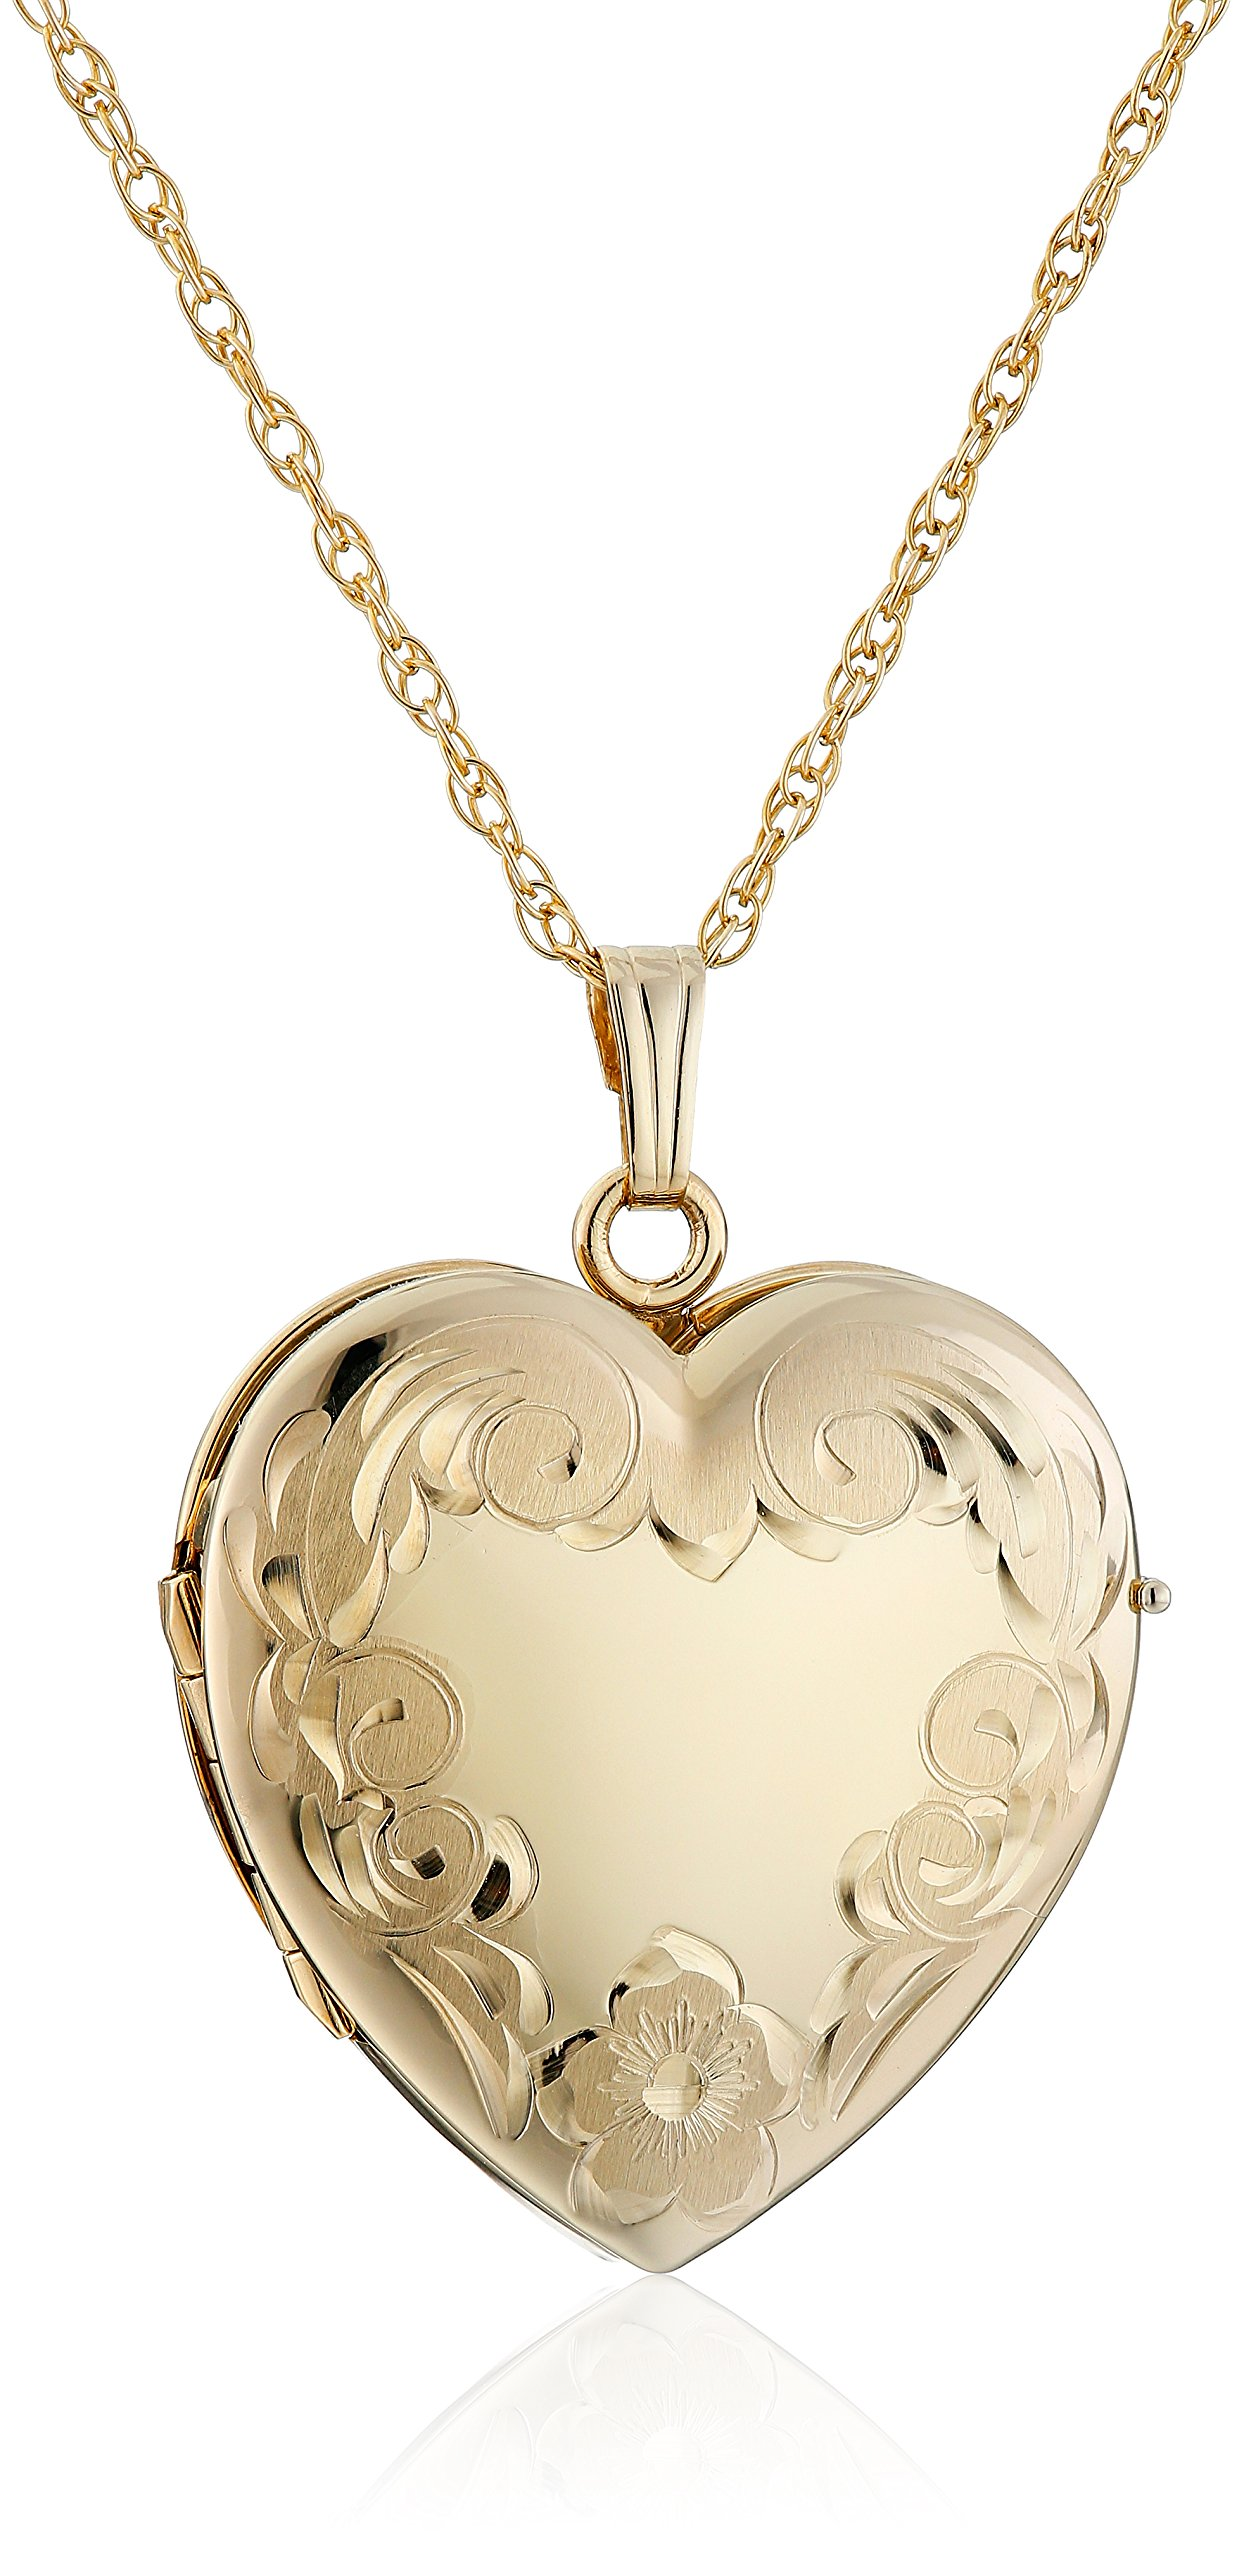 14k Yellow Gold-Filled Engraved Four-Picture Heart Locket Necklace, 20''